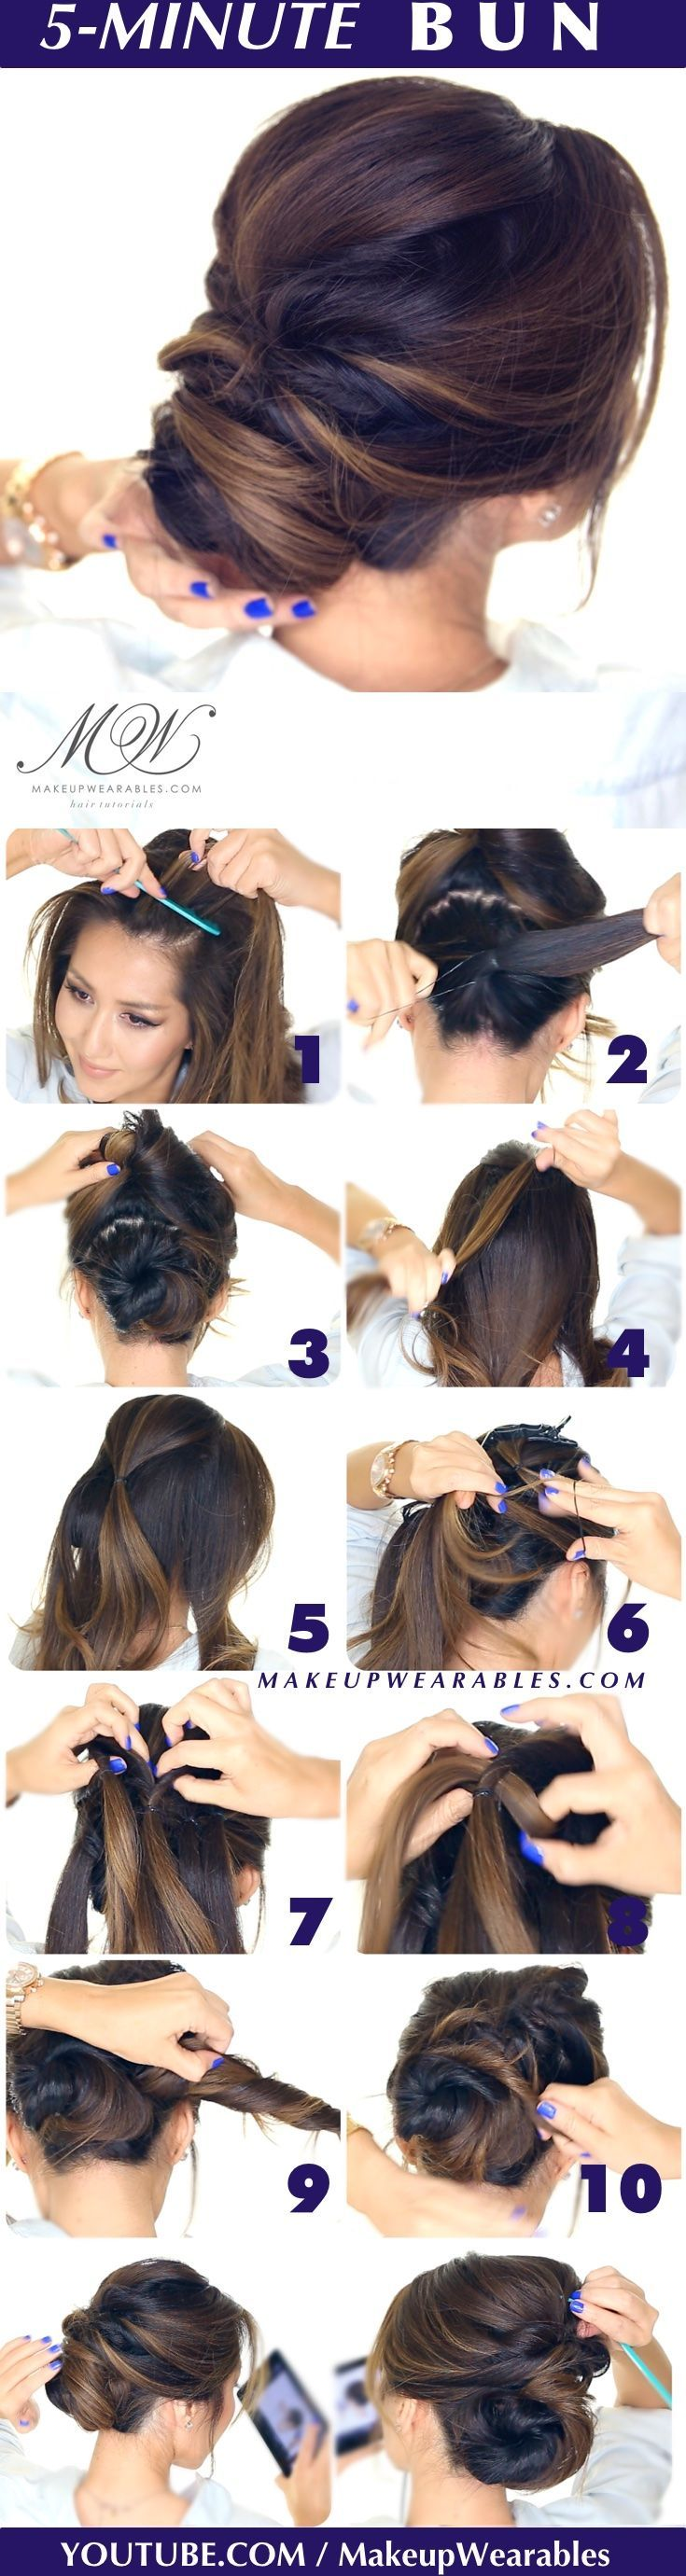 5 Minute Hairstyles For Girls 25 Best Ideas About Easy Updo Tutorial On Pinterest Easy Updo